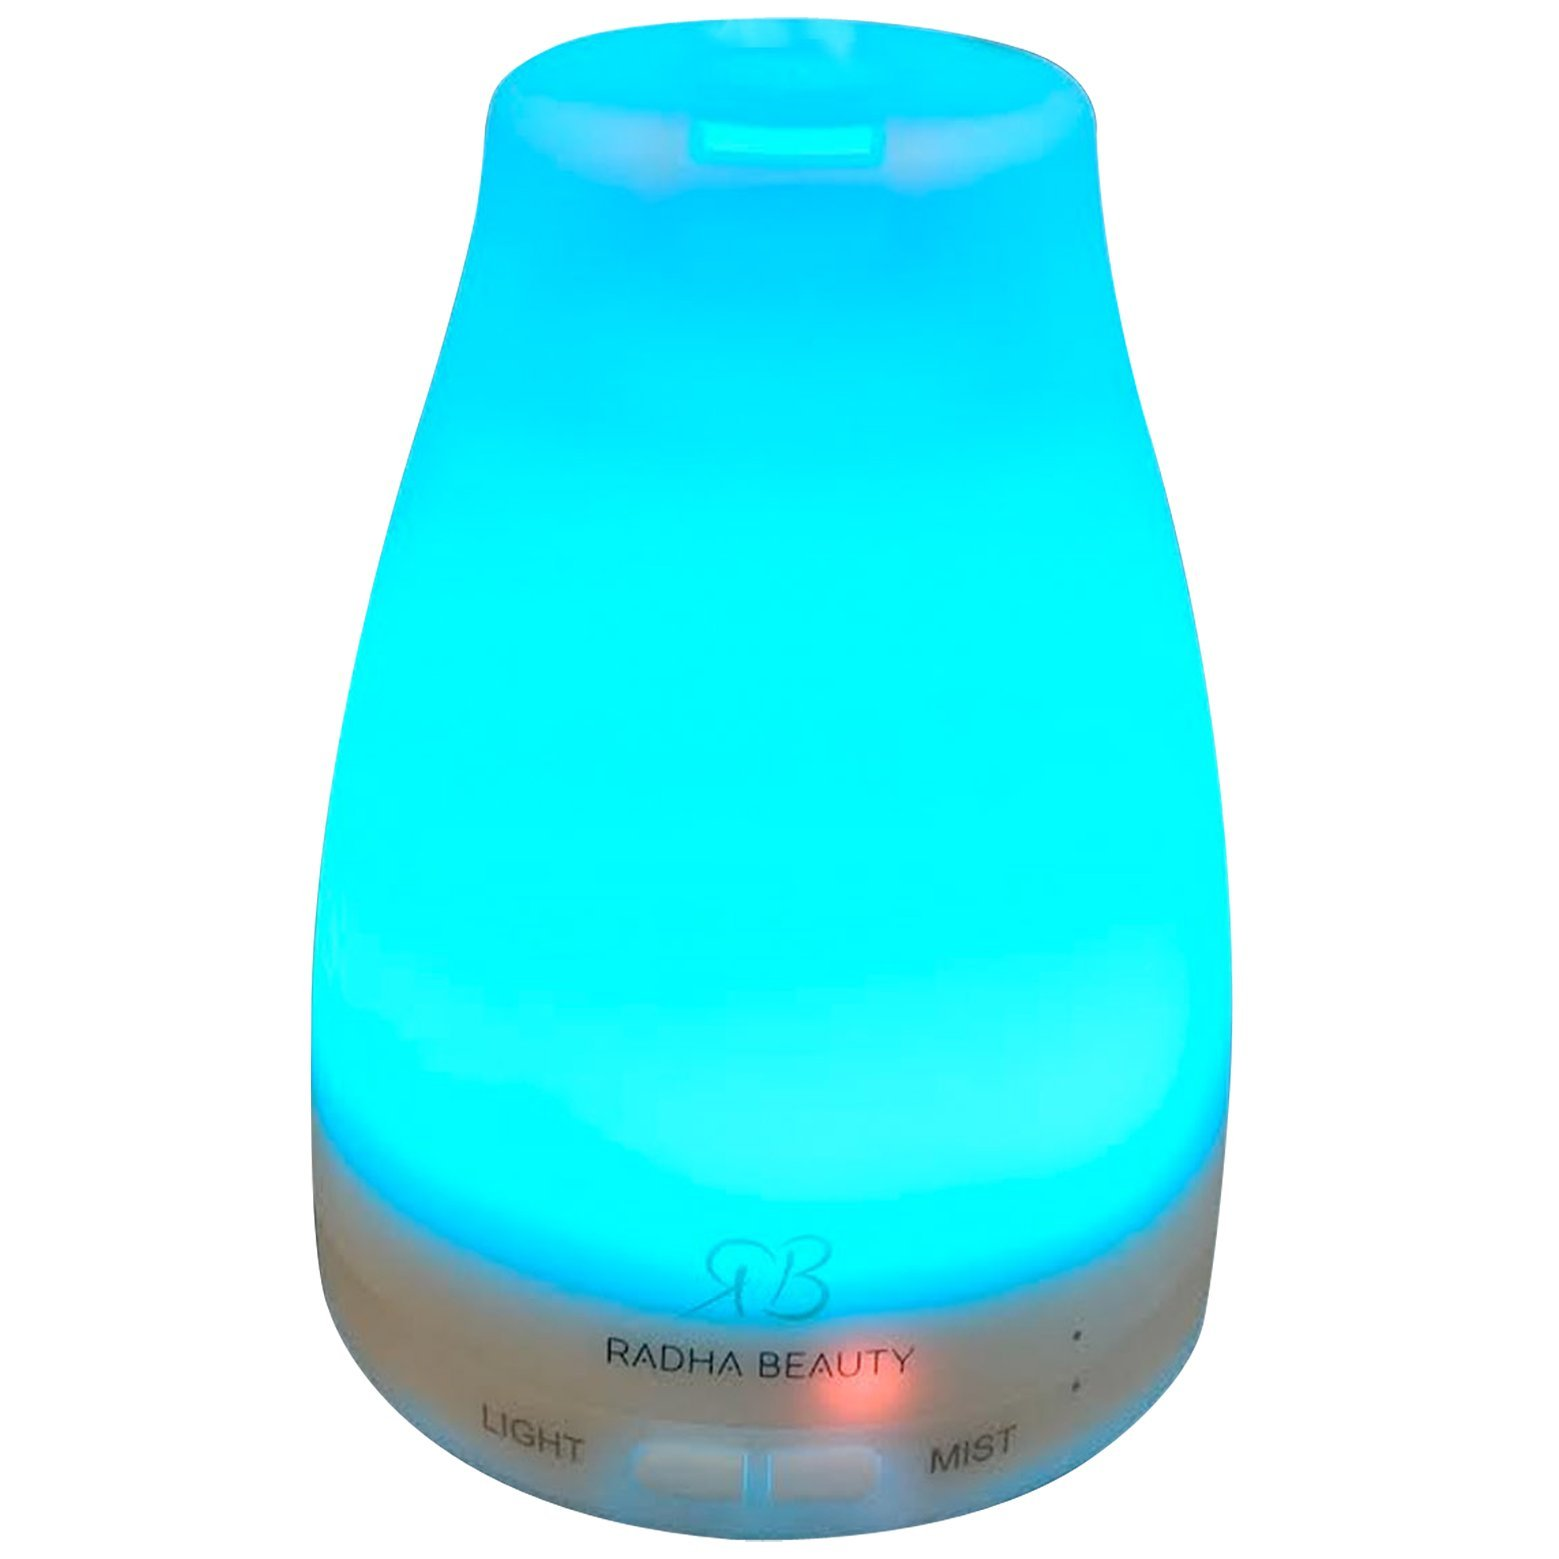 Essential Oil Diffuser are great birthday gifts for her